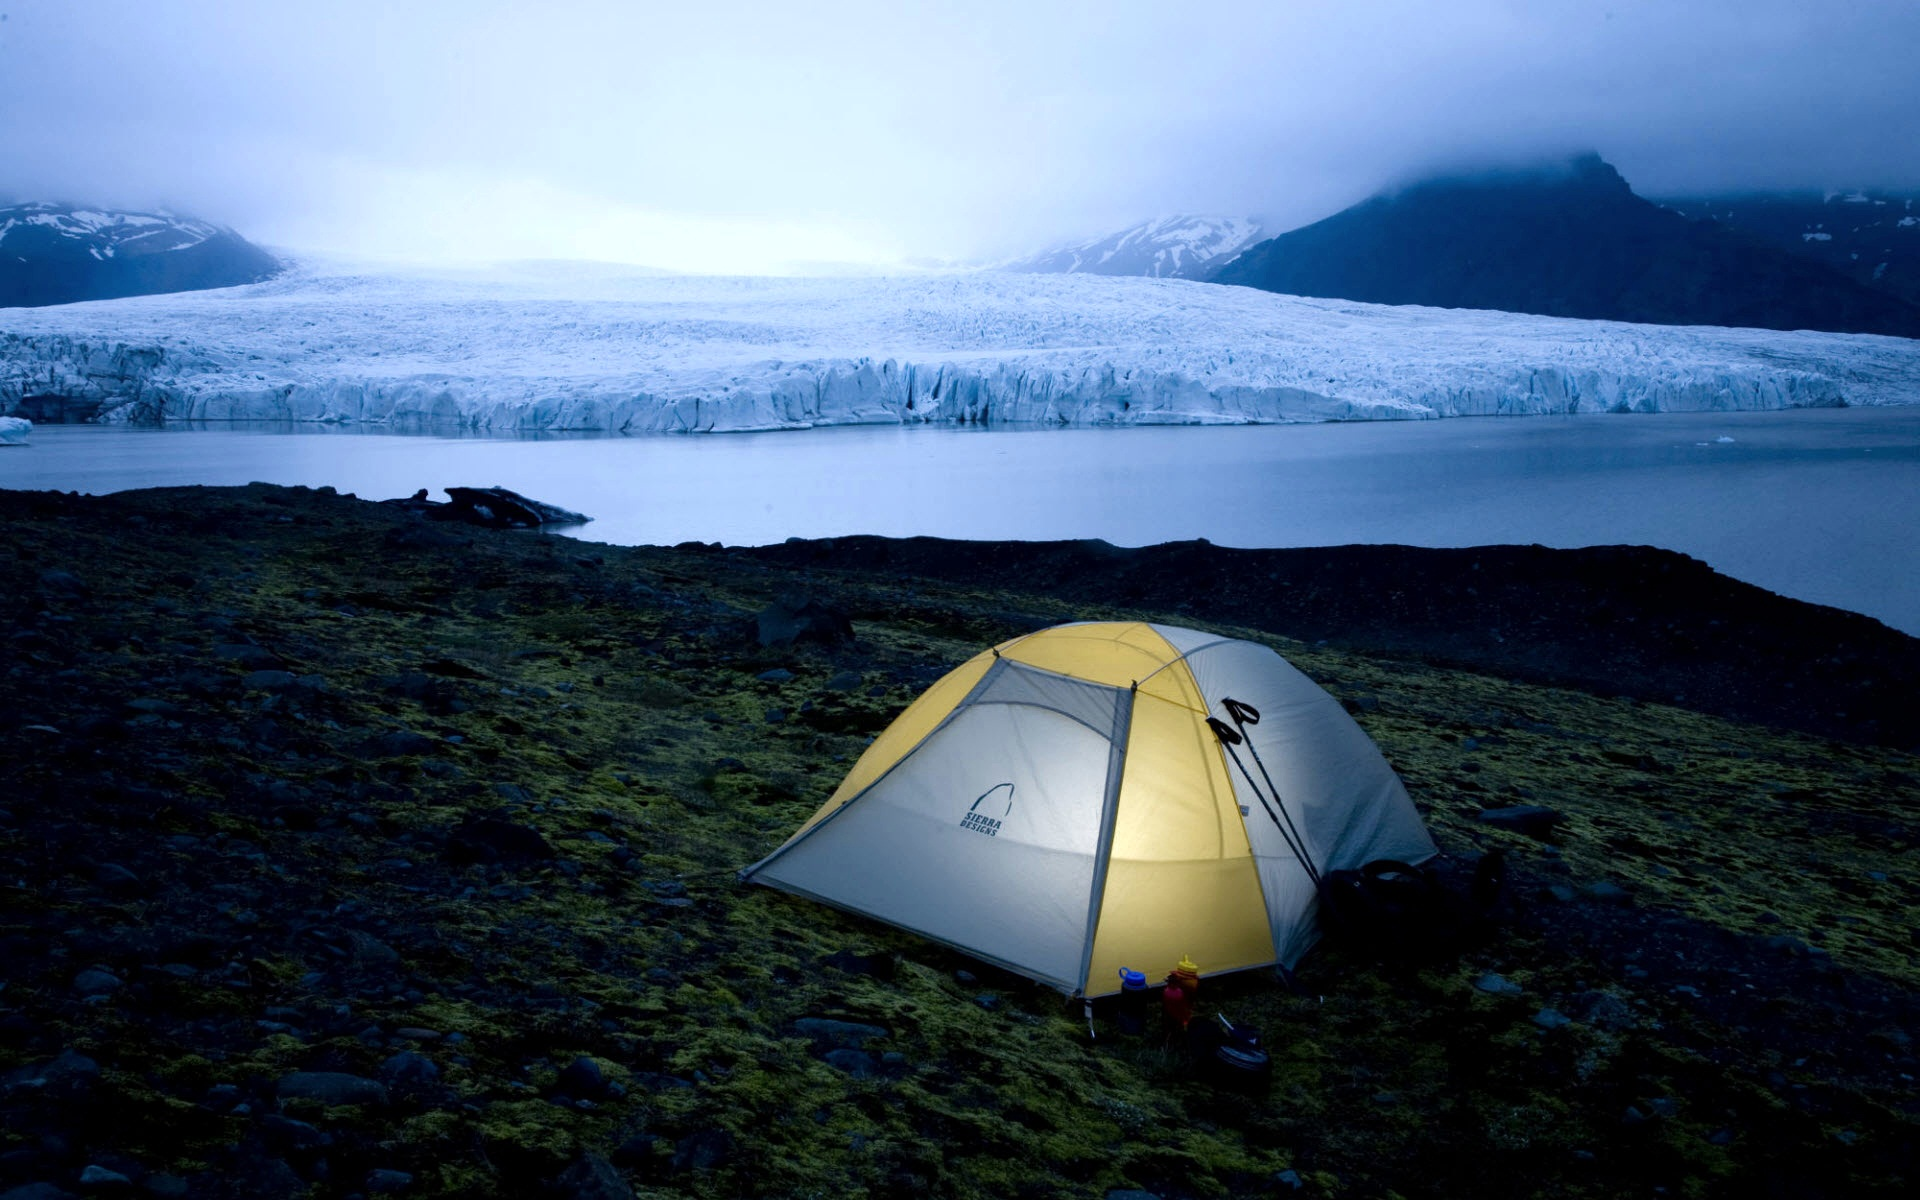 Camping in Iceland National Park776733825 - Camping in Iceland National Park - Park, National, Iceland, False, Camping